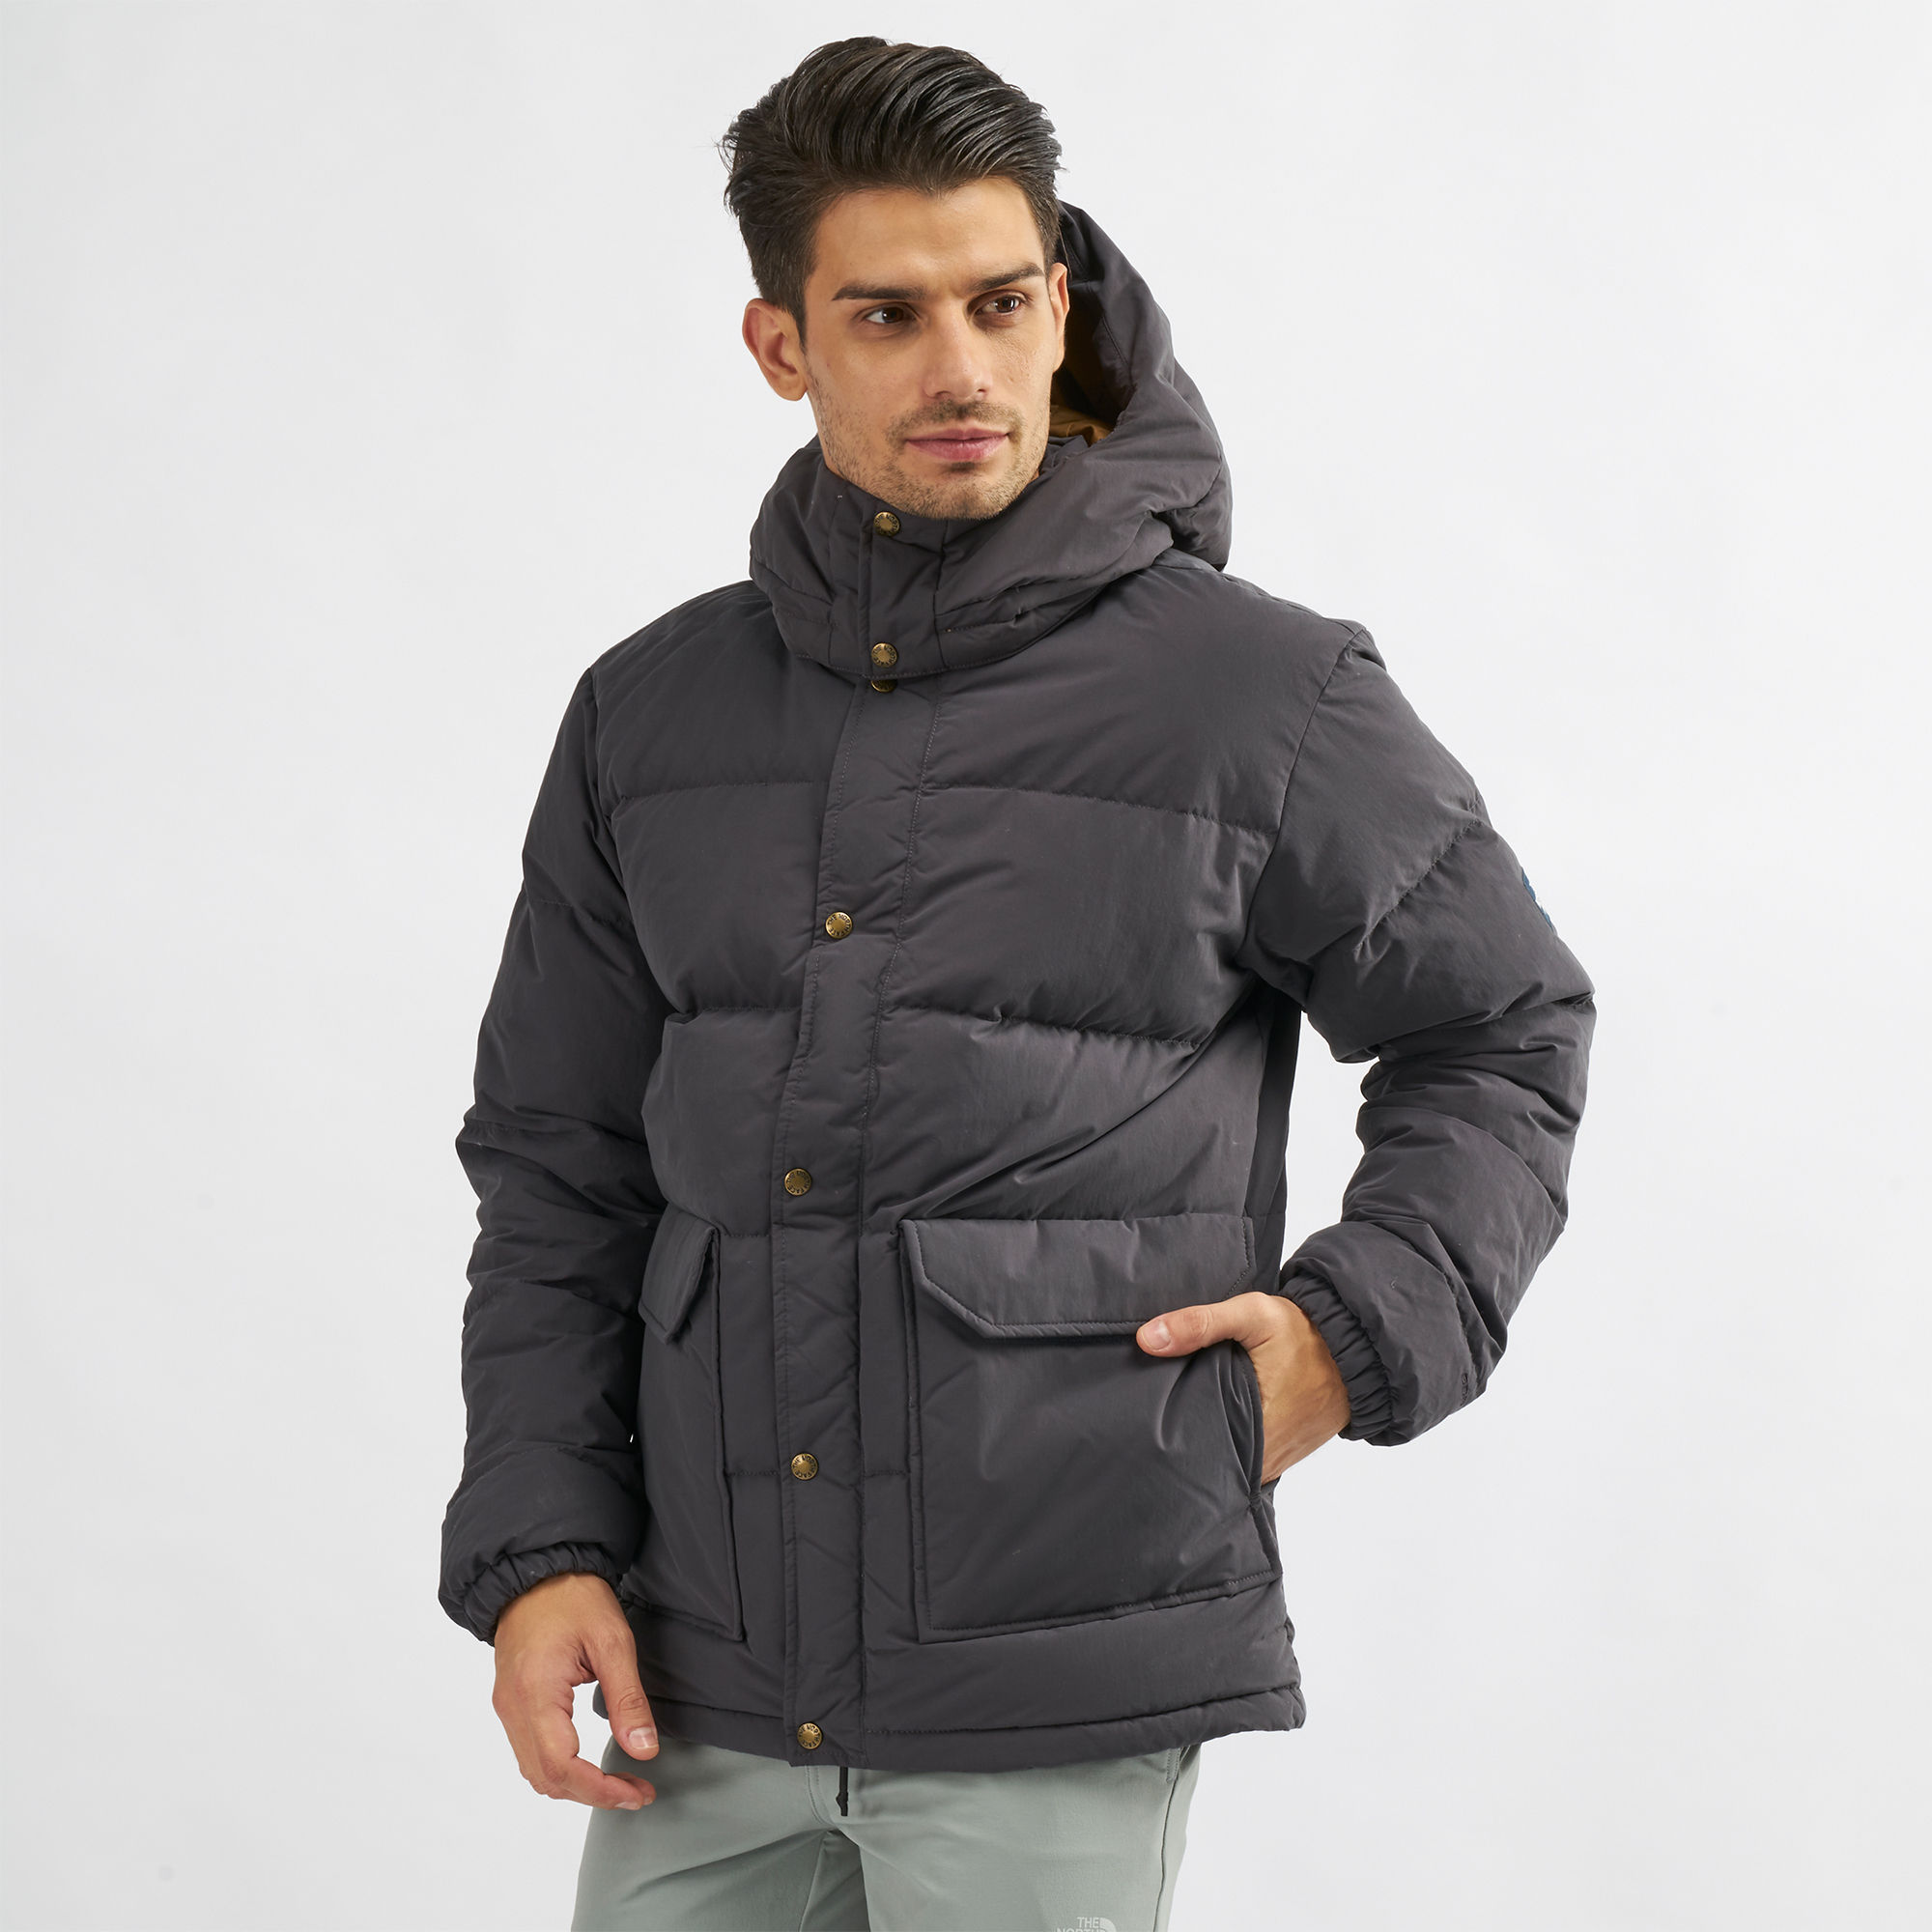 b5ce54c5a The North Face Down Sierra 2.0 Jacket | Jackets | Clothing | Mens | SSS